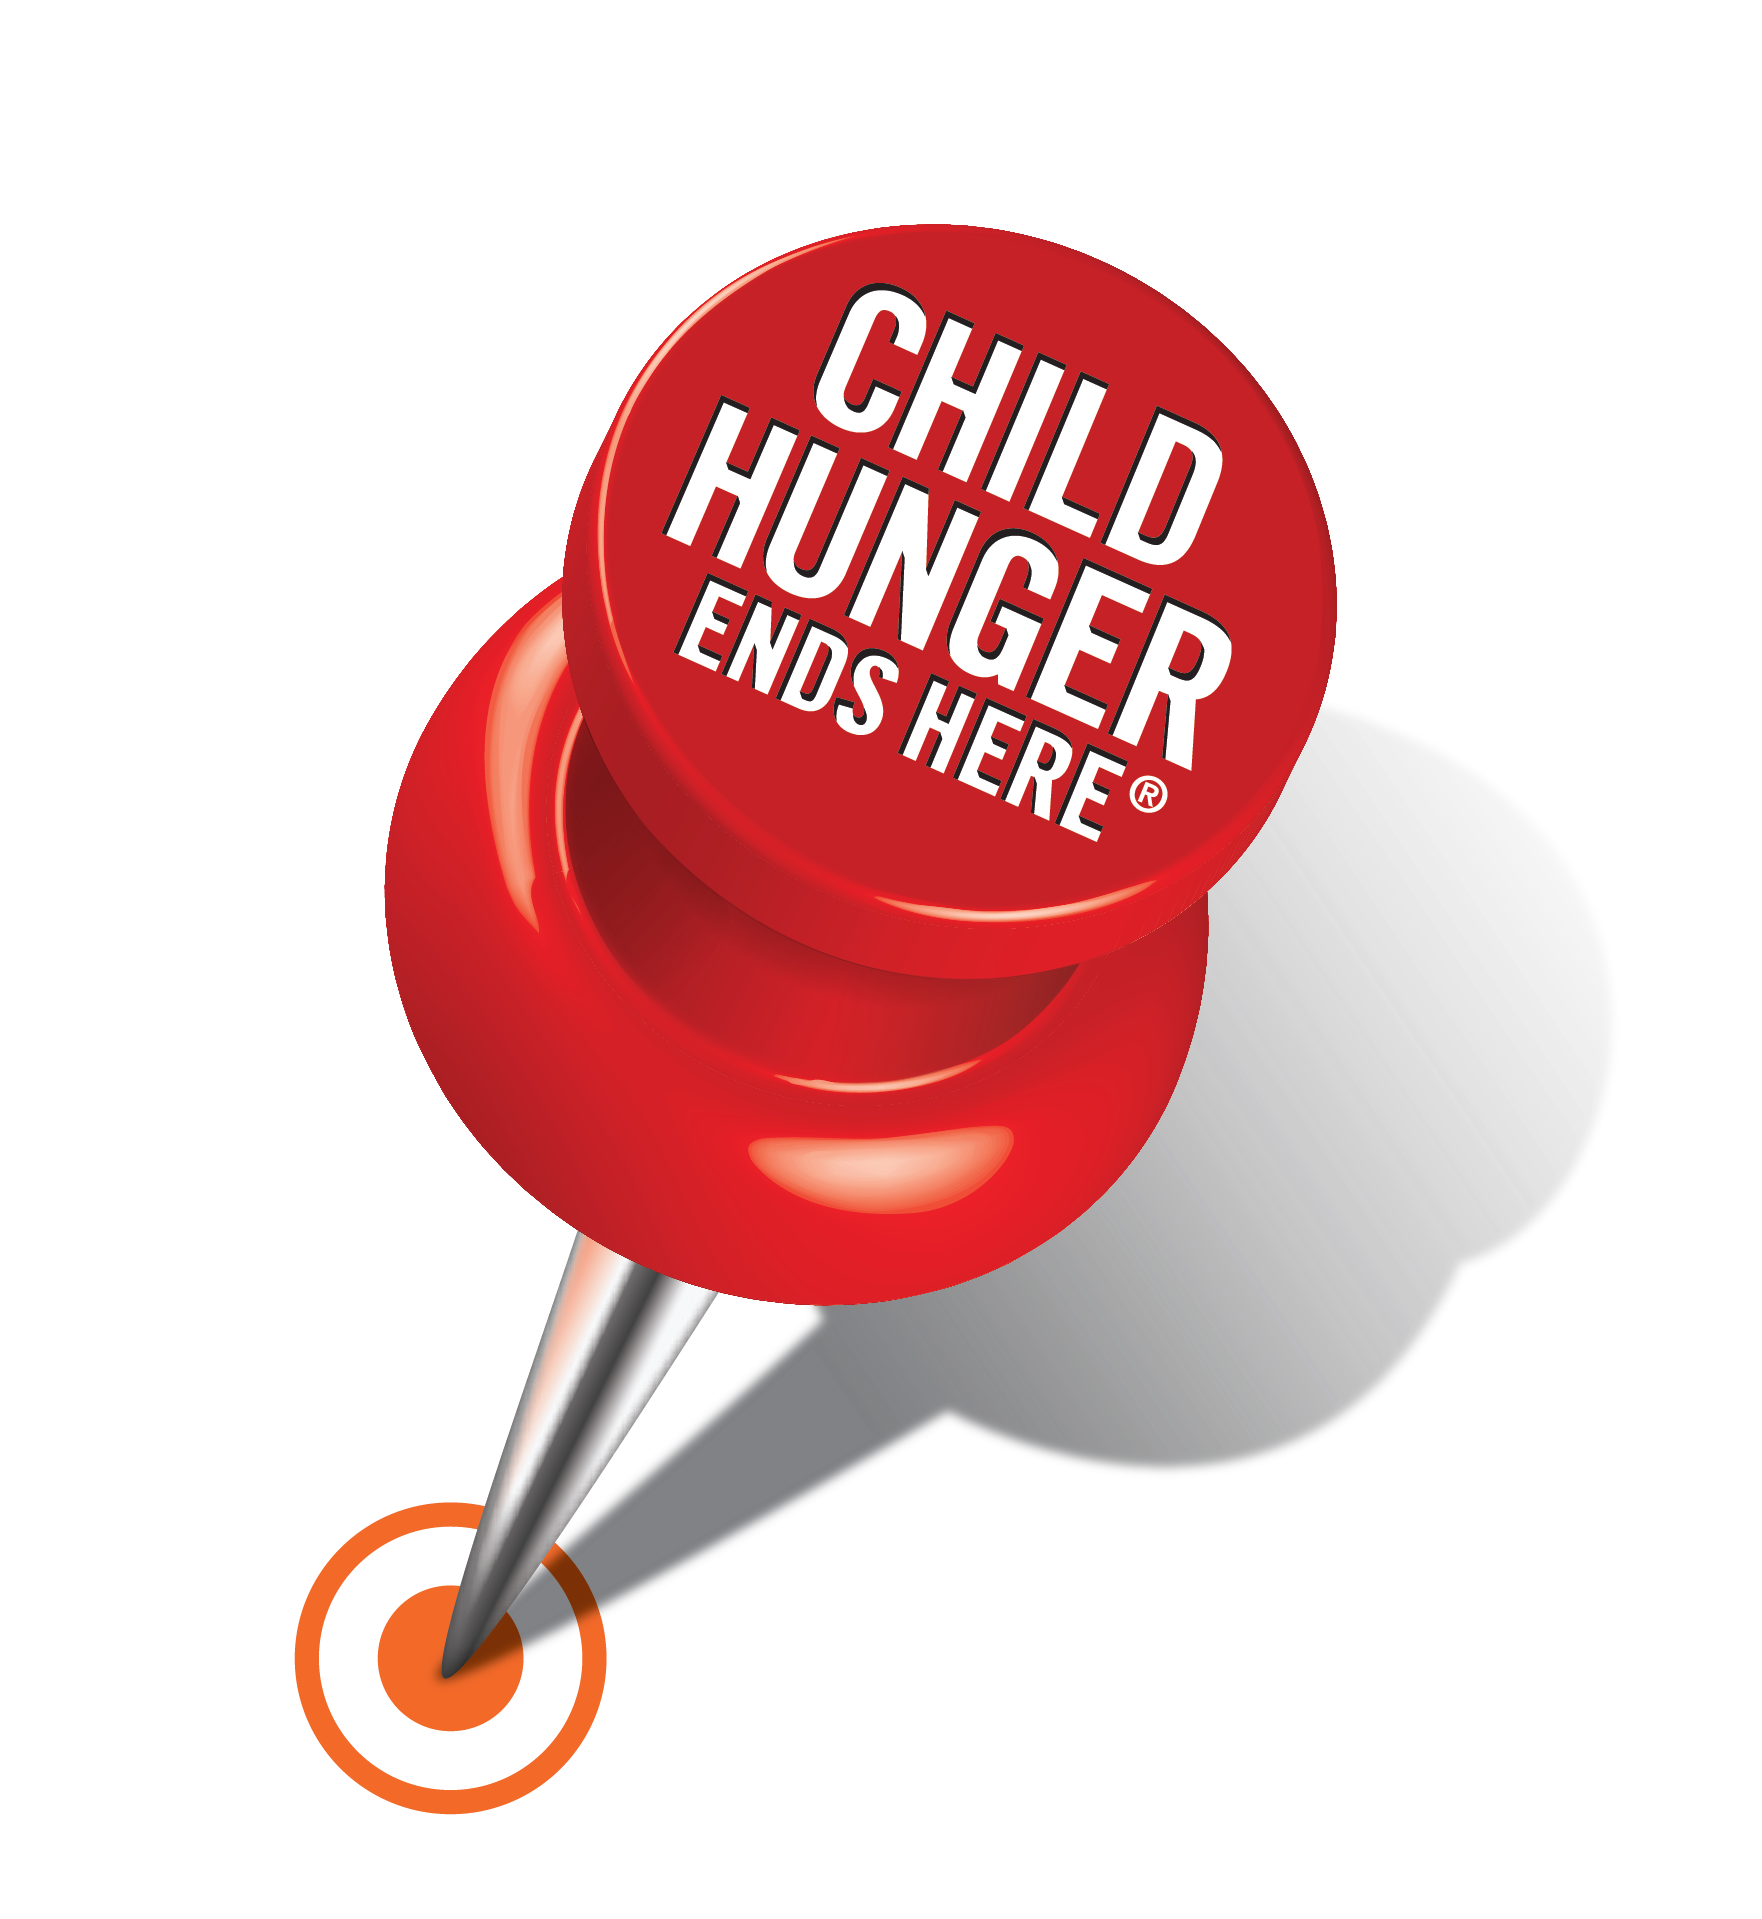 Hungry children png. Child hunger can end